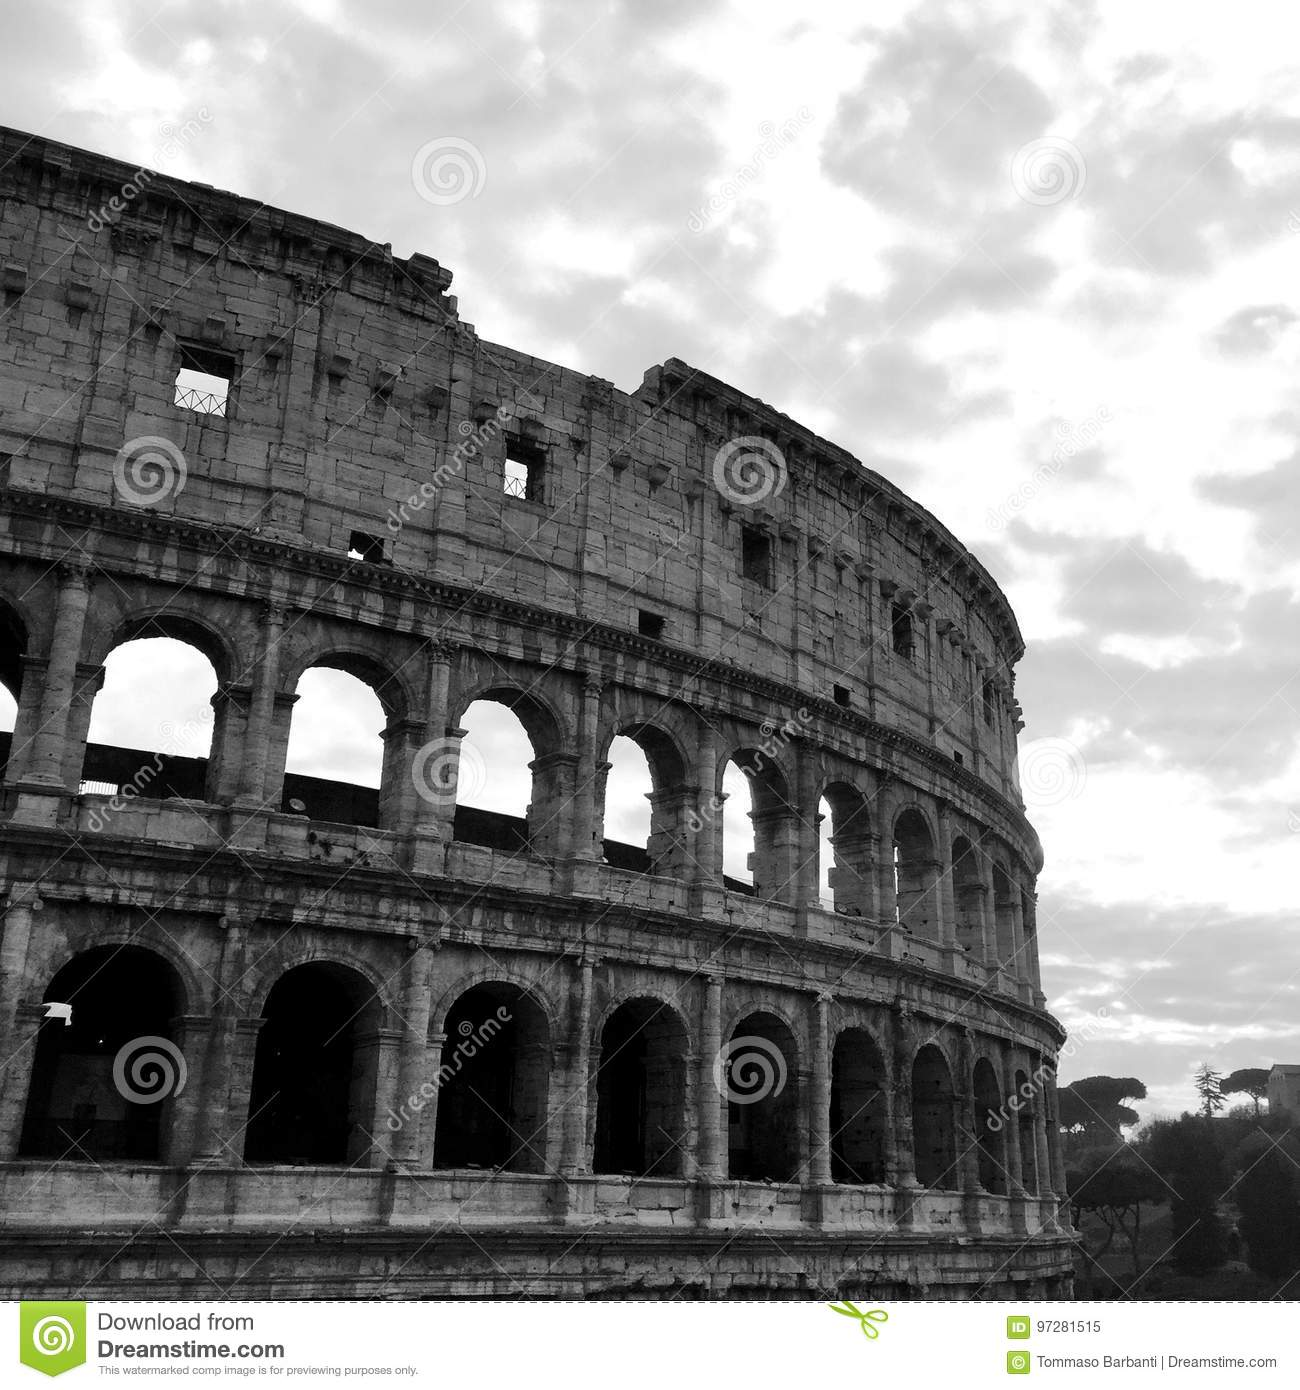 Black And White Postcard From >> Postcard From Coliseum Black And White Stock Image Image Of